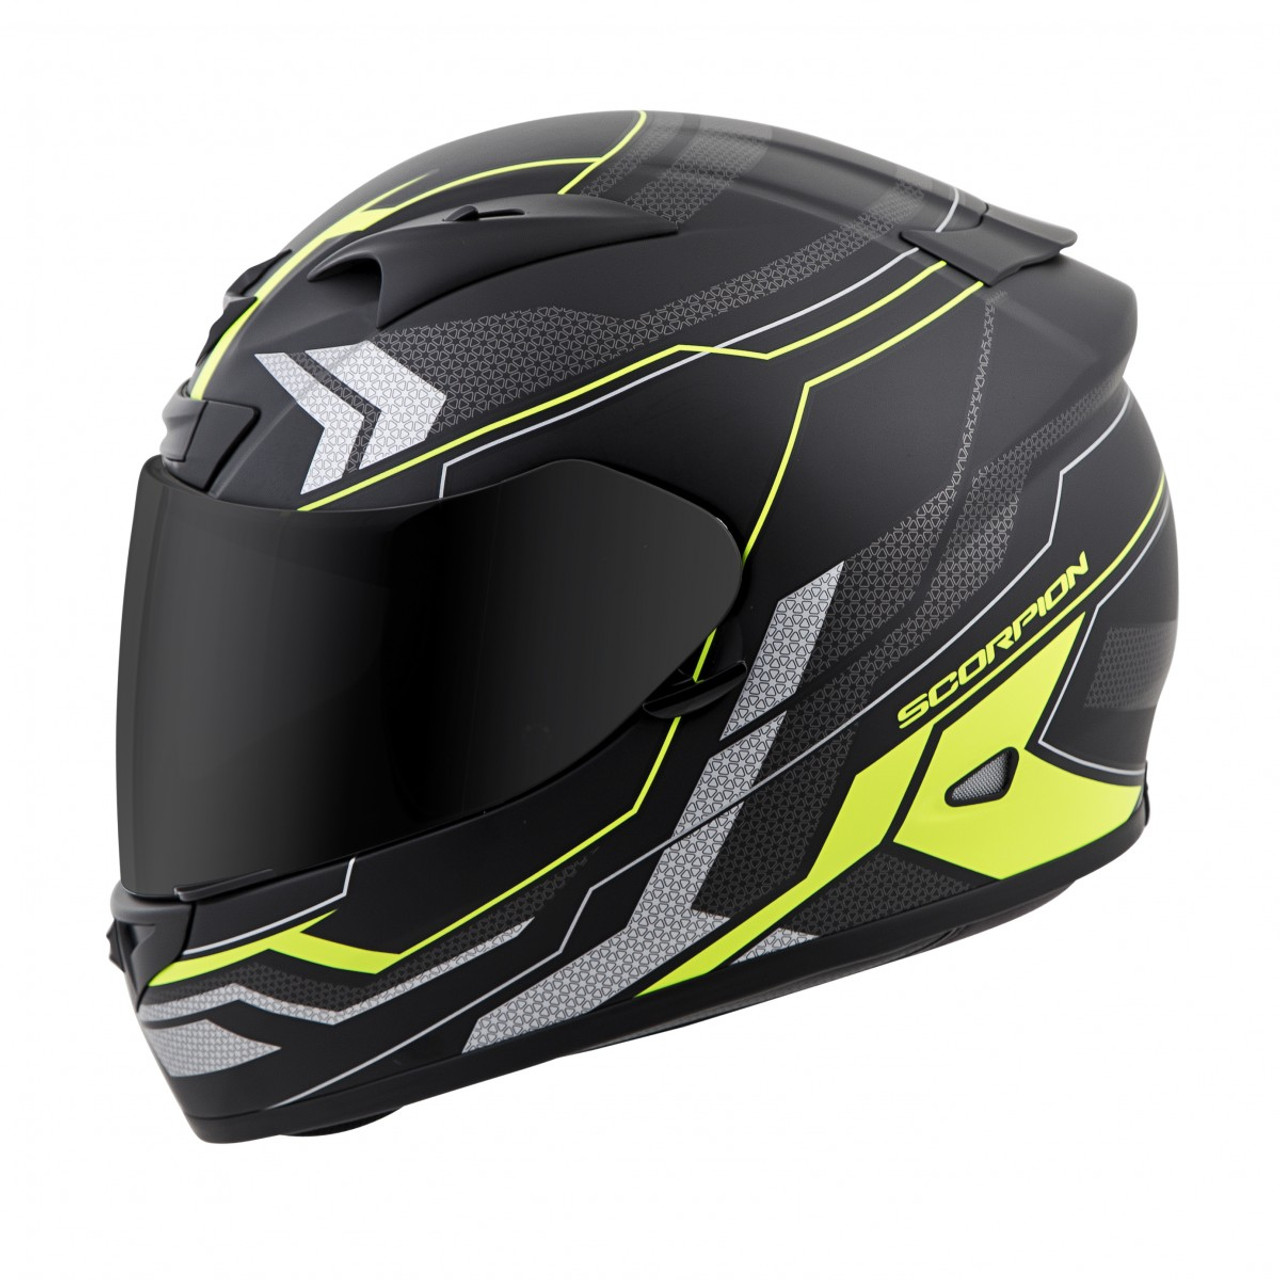 547a3e2a SCORPION EXO-R710 Transect Hi-Viz HELMET ALL SIZES 71-4425